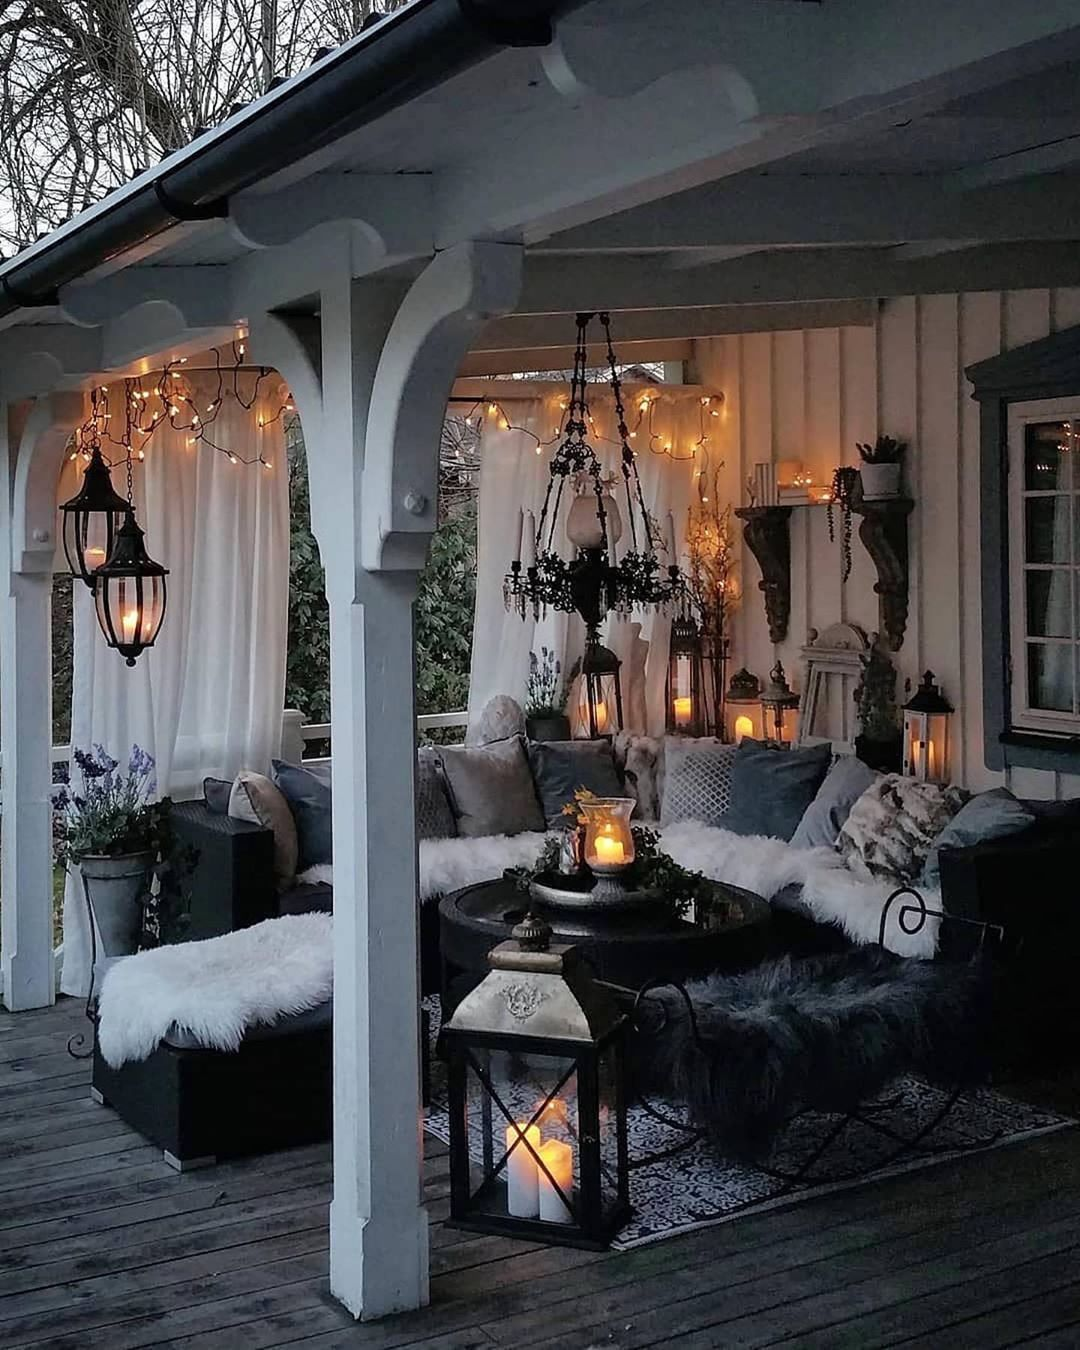 Hilary Farr On Instagram Love The Use Of Lanterns Here Don T You Just Want To Cozy Up With A Blanket And Cu Patio Design Outdoor Patio Designs Outdoor Rooms